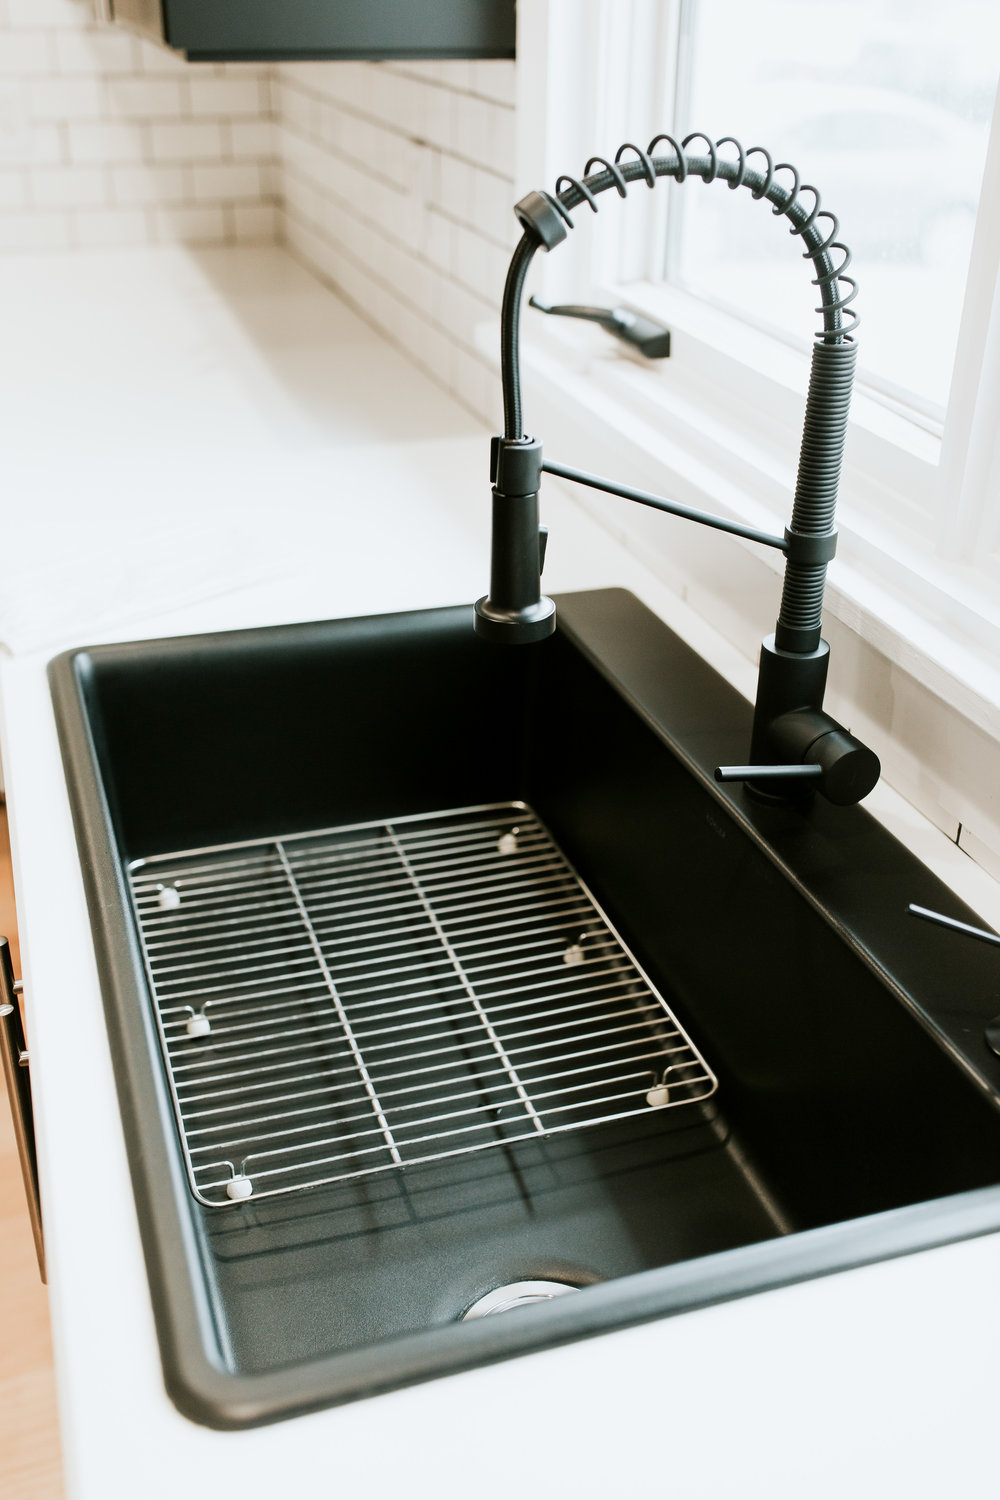 Full modern kitchen tour - Black sinks, black faucet, and white countertops